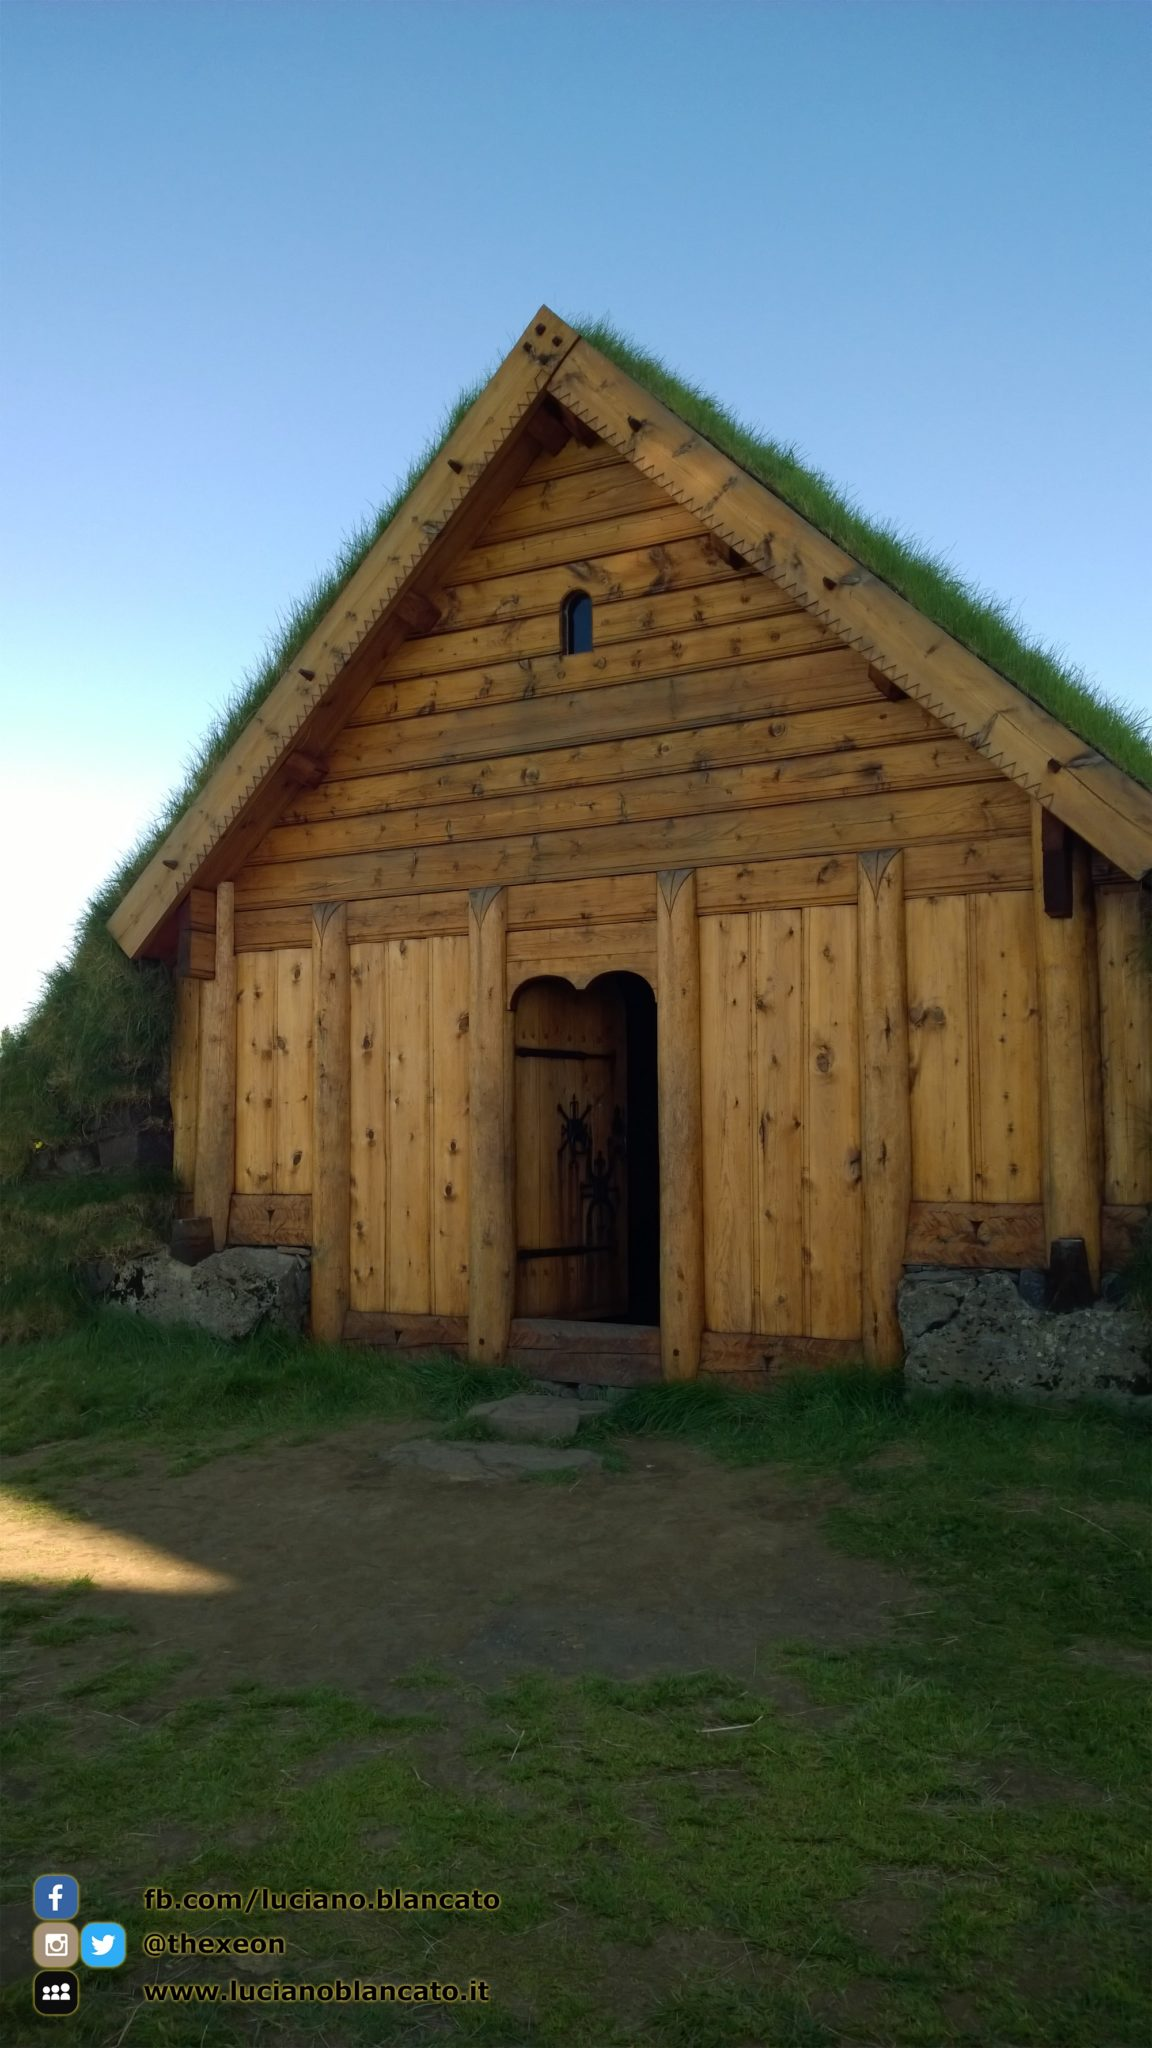 Iceland - Chiesa tipica